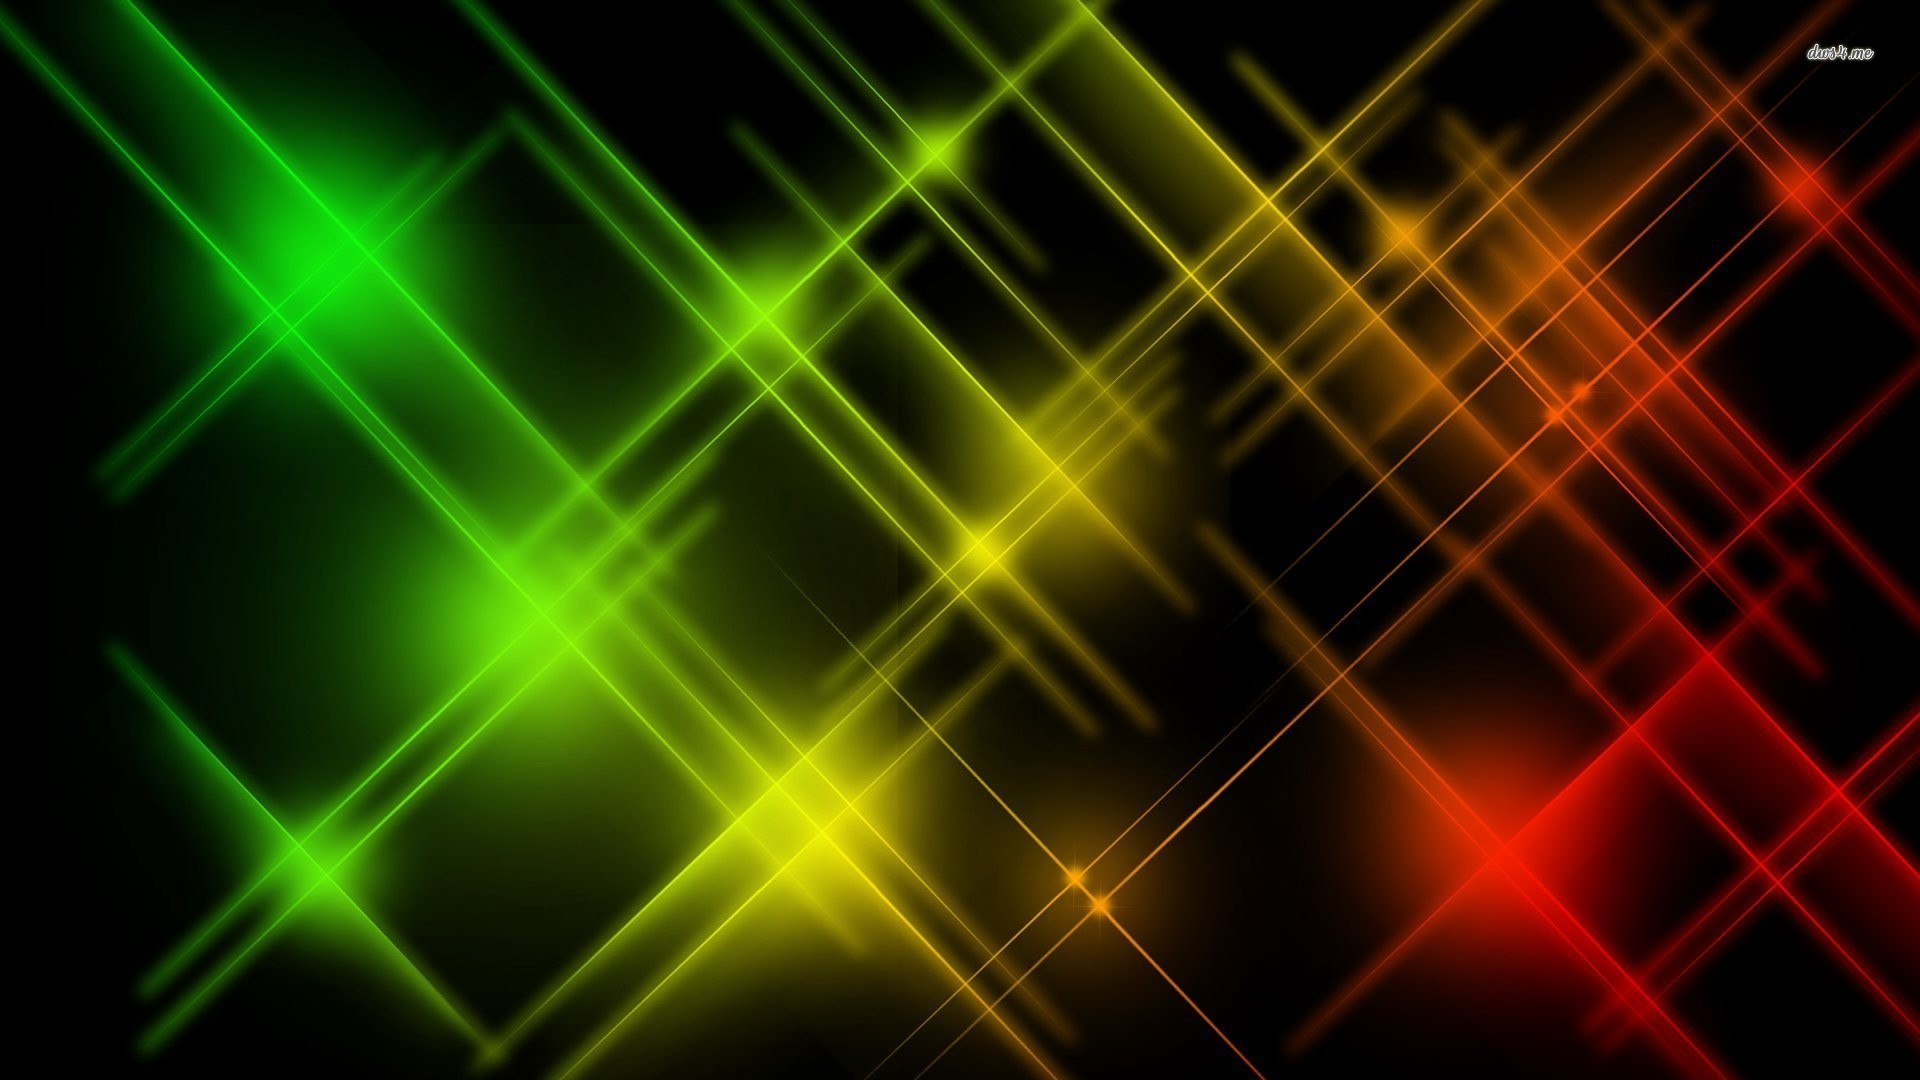 Download Red And Green Wallpaper Gallery Red Black And Green Backgrounds